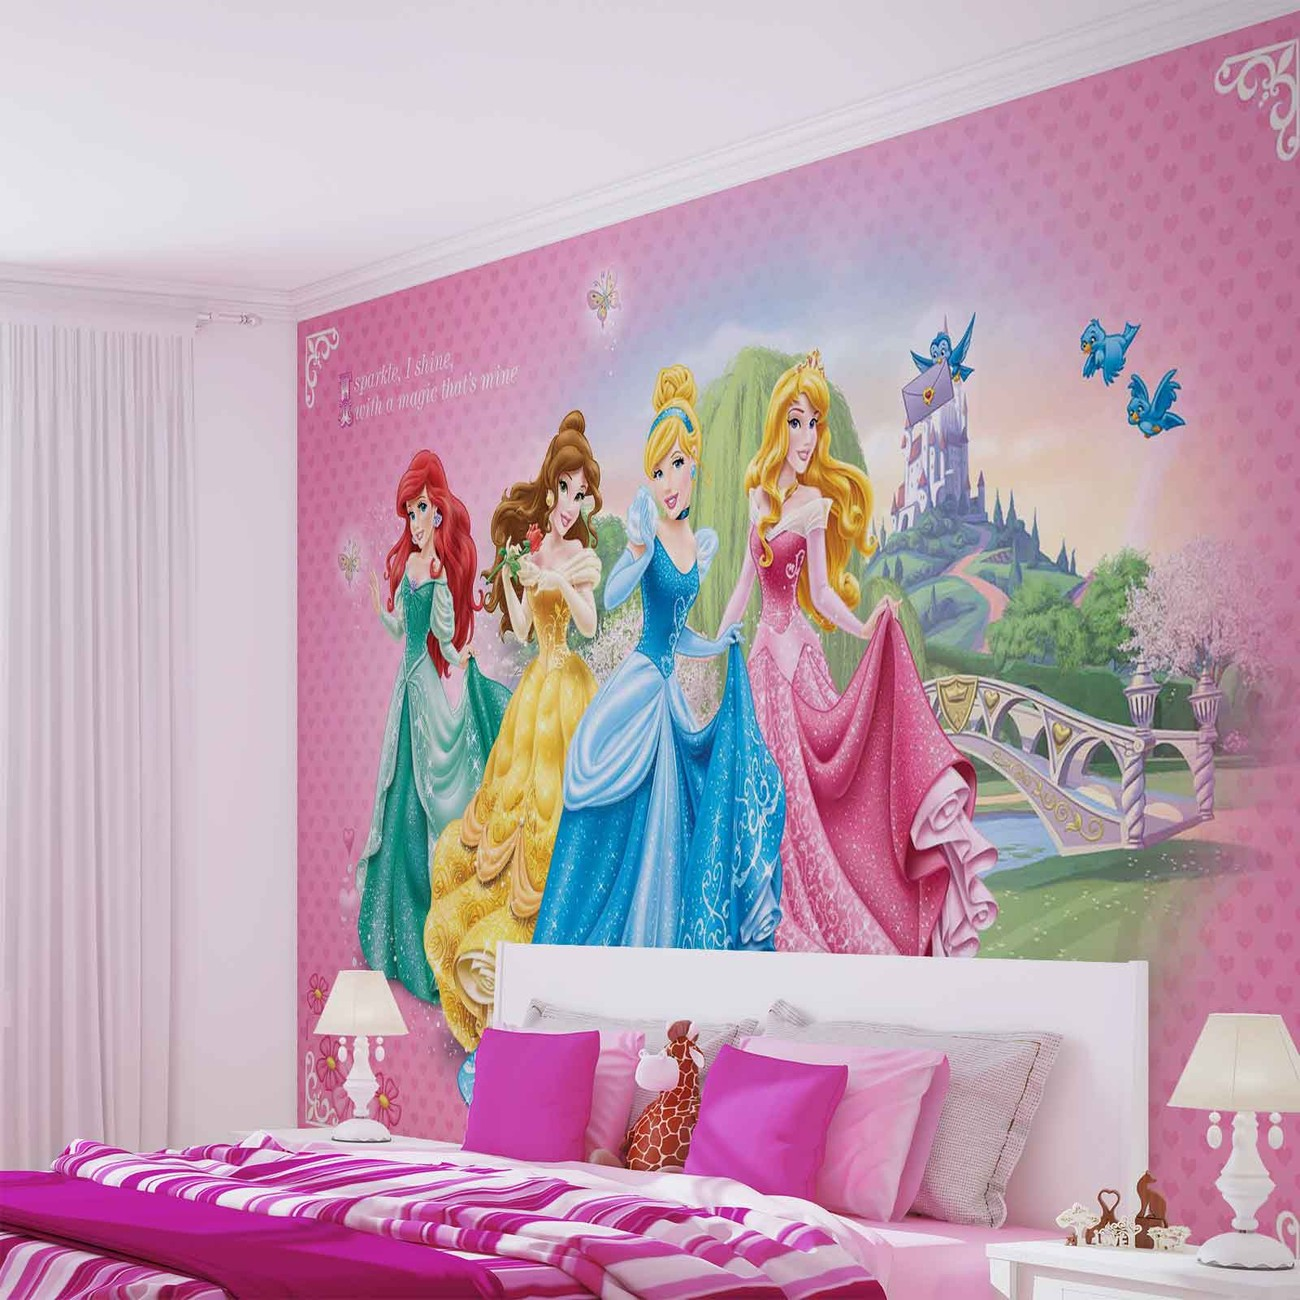 Disney princesses cinderella belle wall paper mural buy for Disney wall mural uk